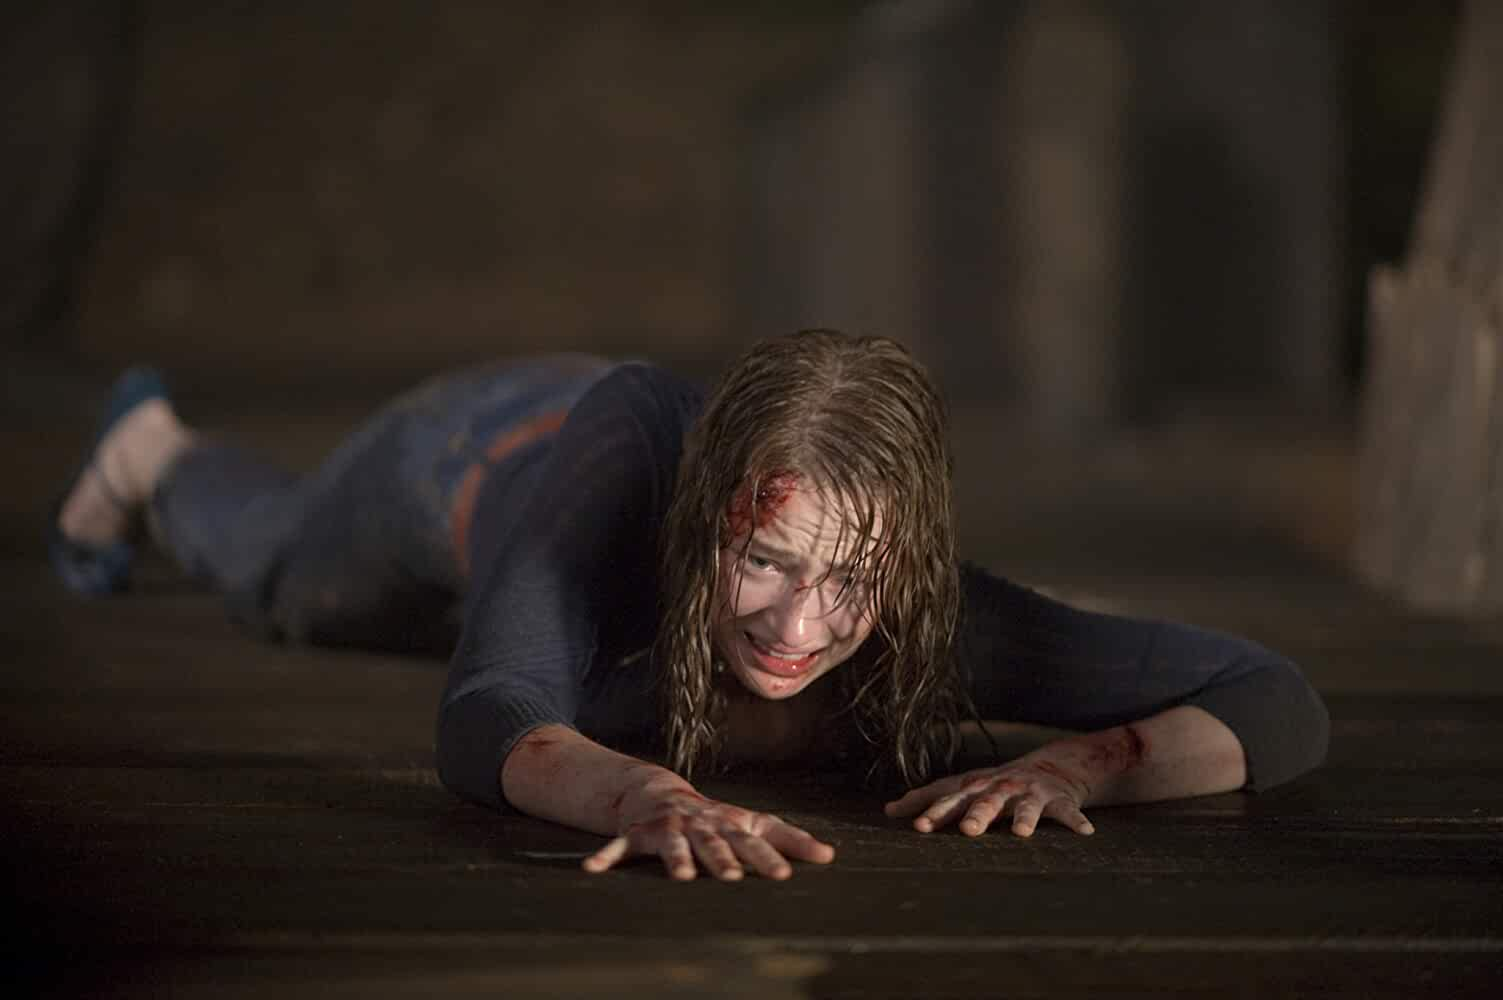 Kristen Connolly in The Cabin in the Woods (2011)